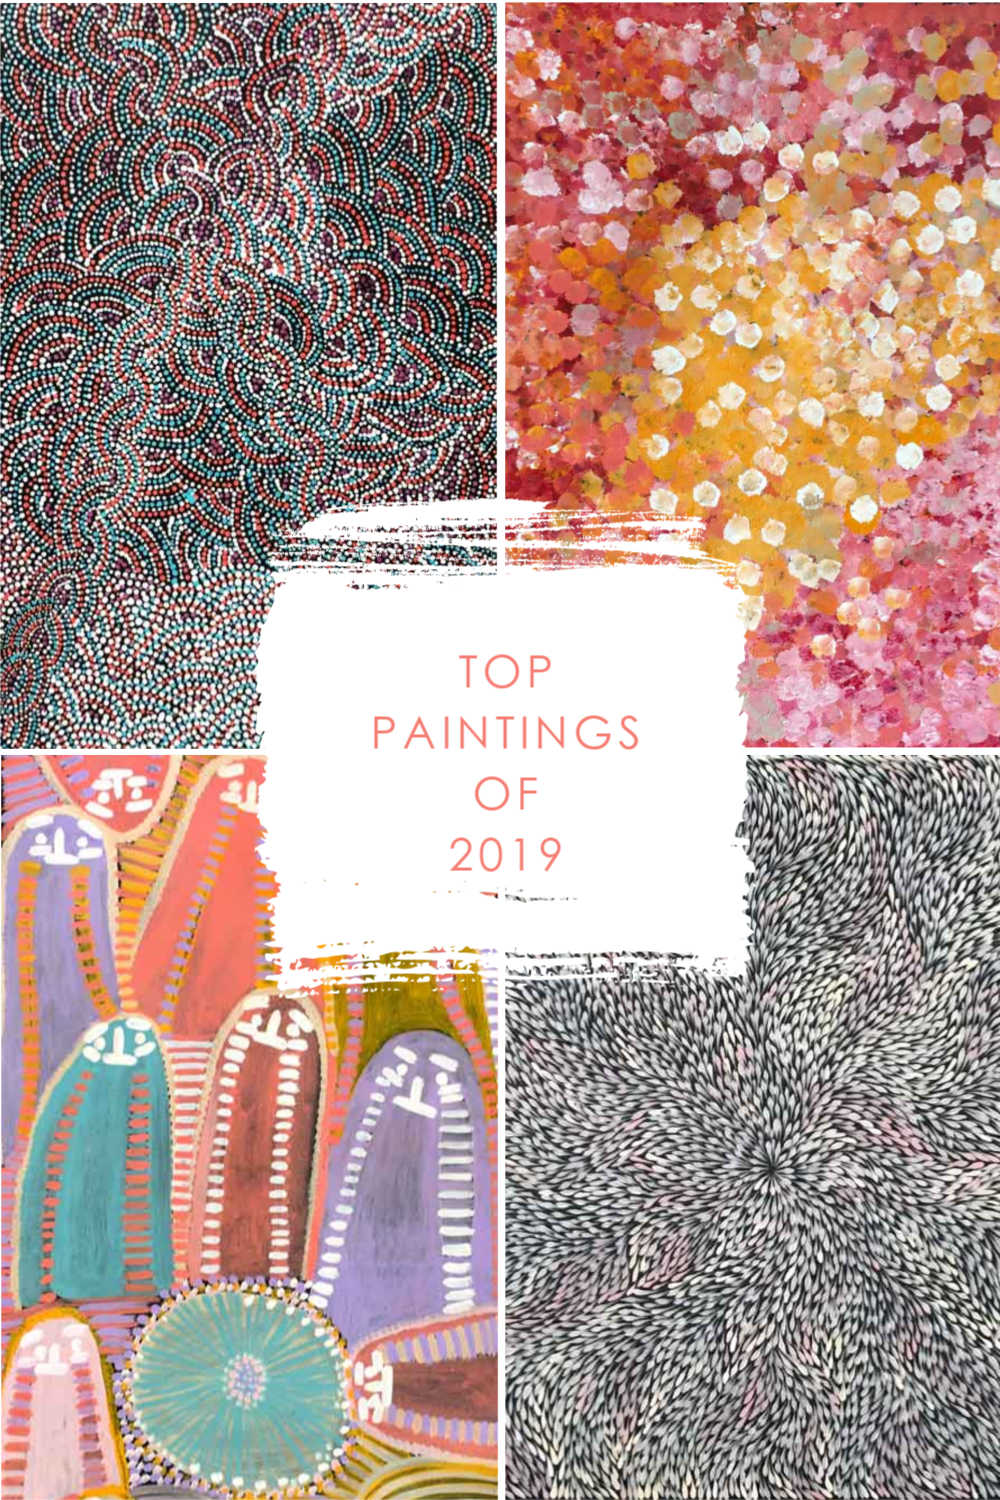 Top Aboriginal Paintings of 2019